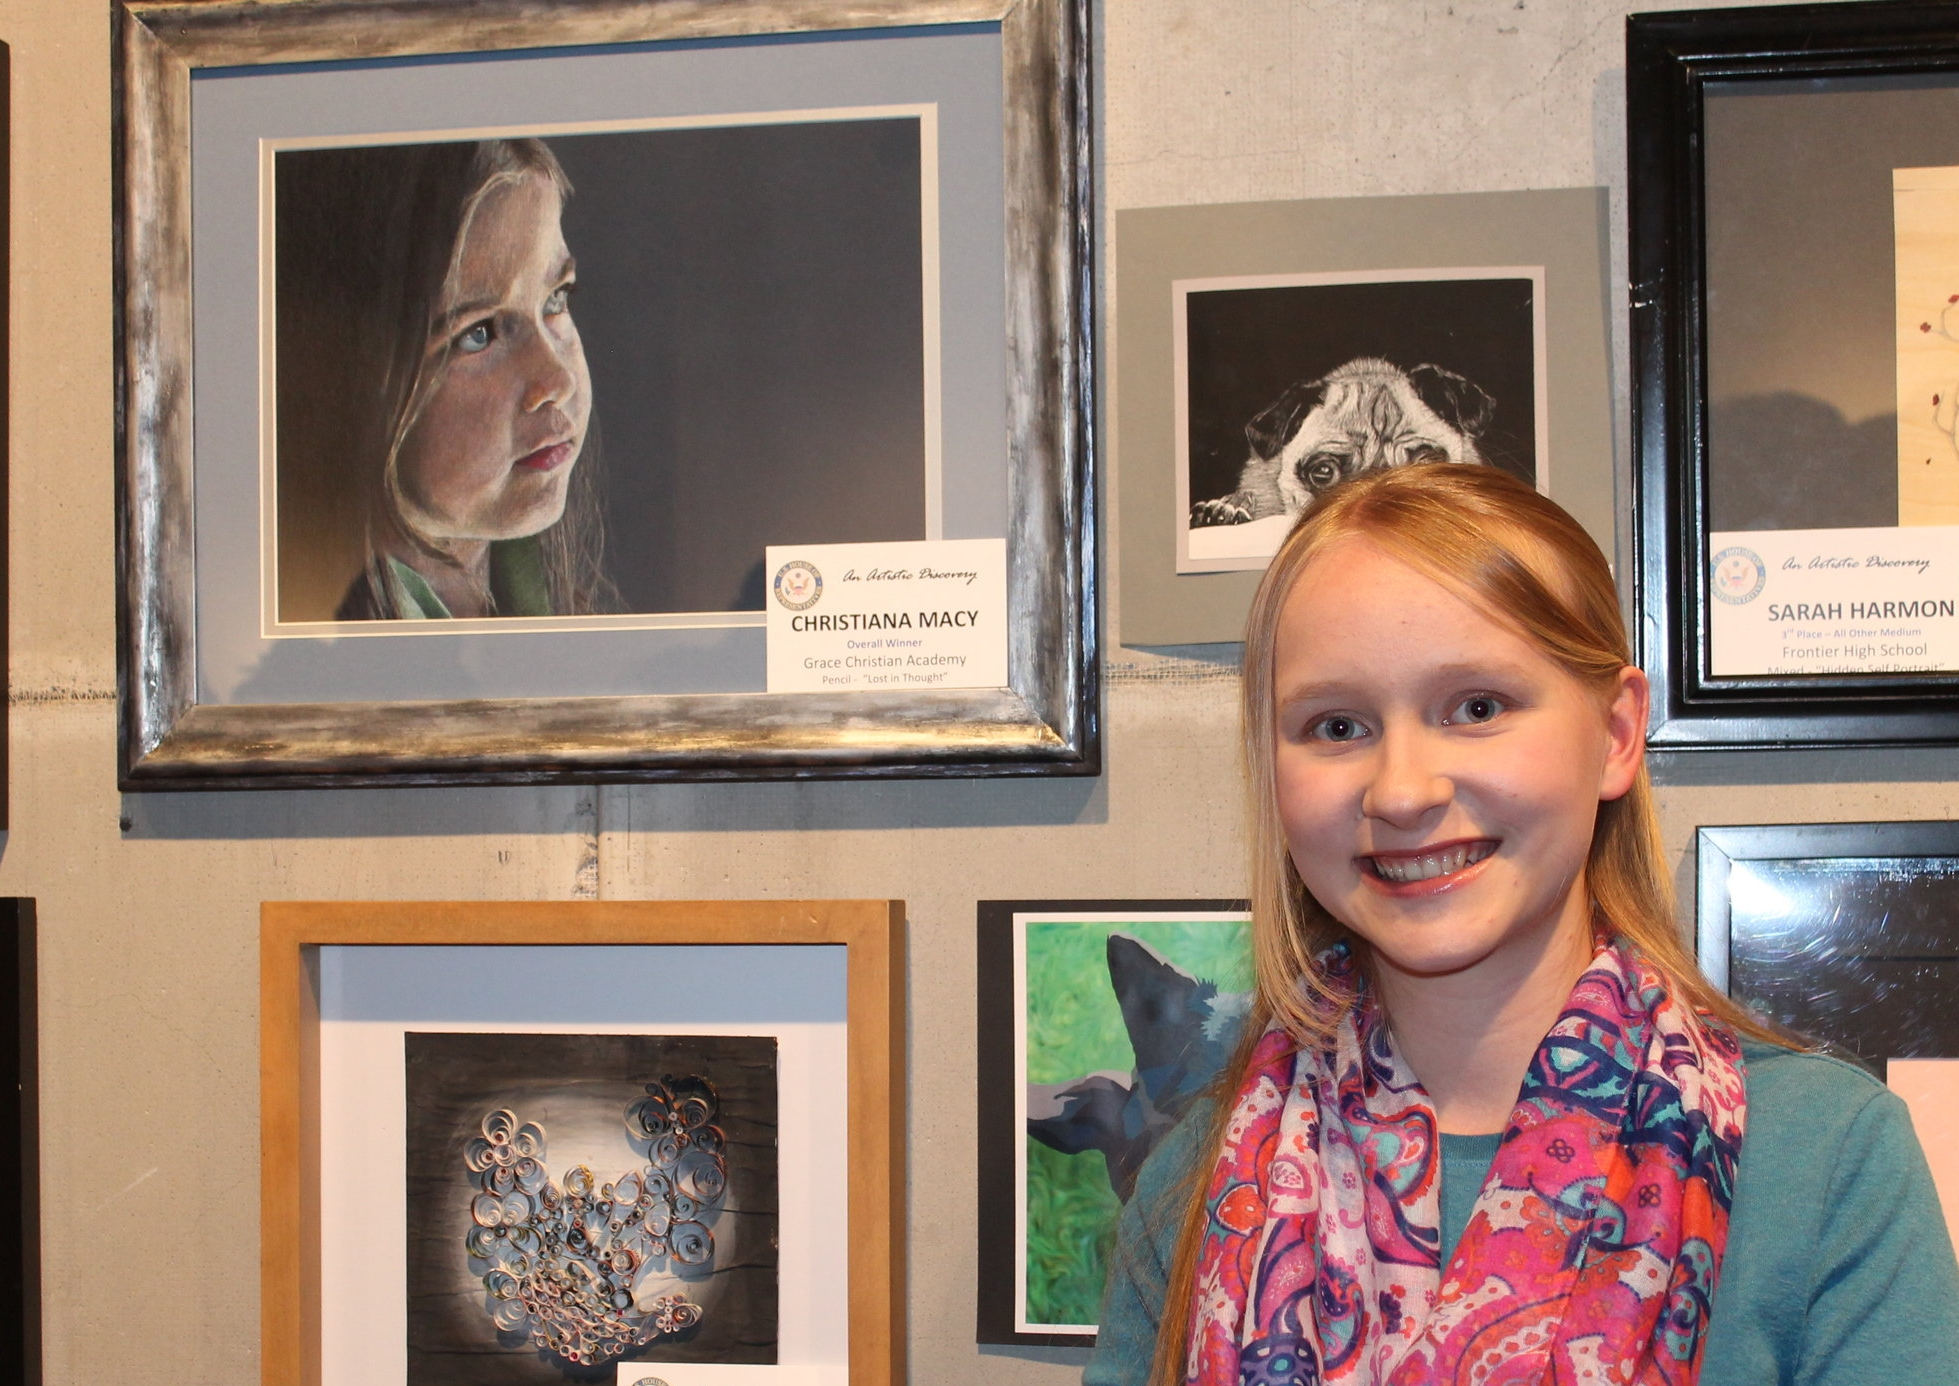 Christiana won the Congressional Art Contest with her colored pencil drawing Lost in Thought.